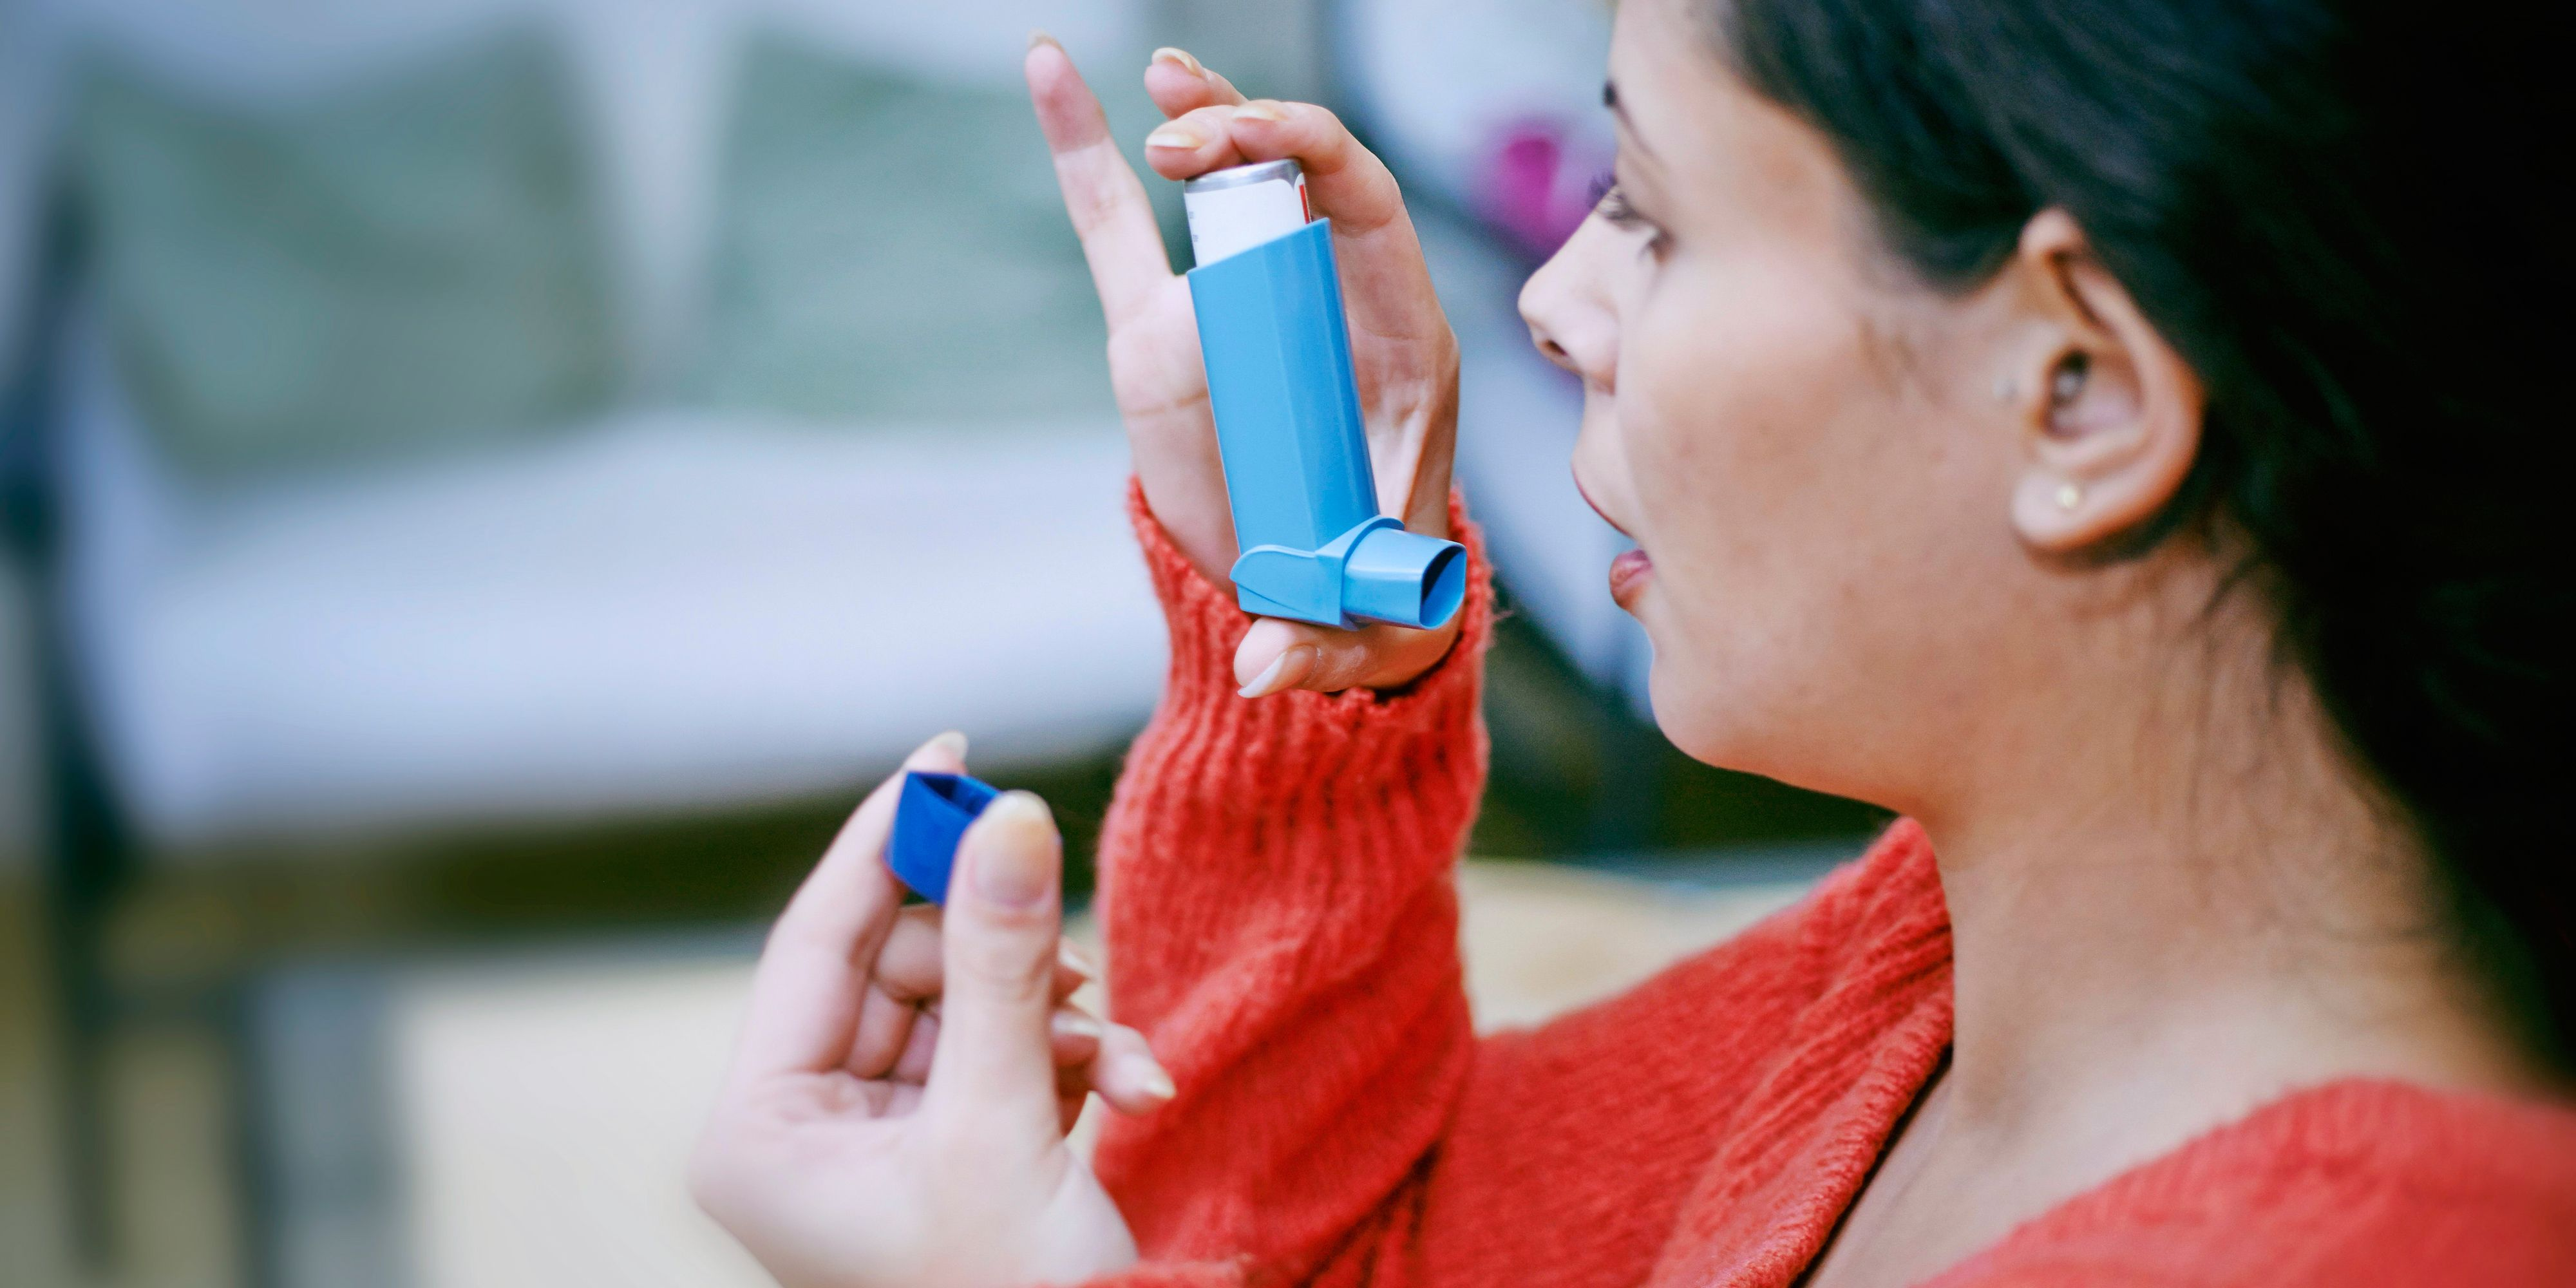 Happens take many too puffs if What you inhaler